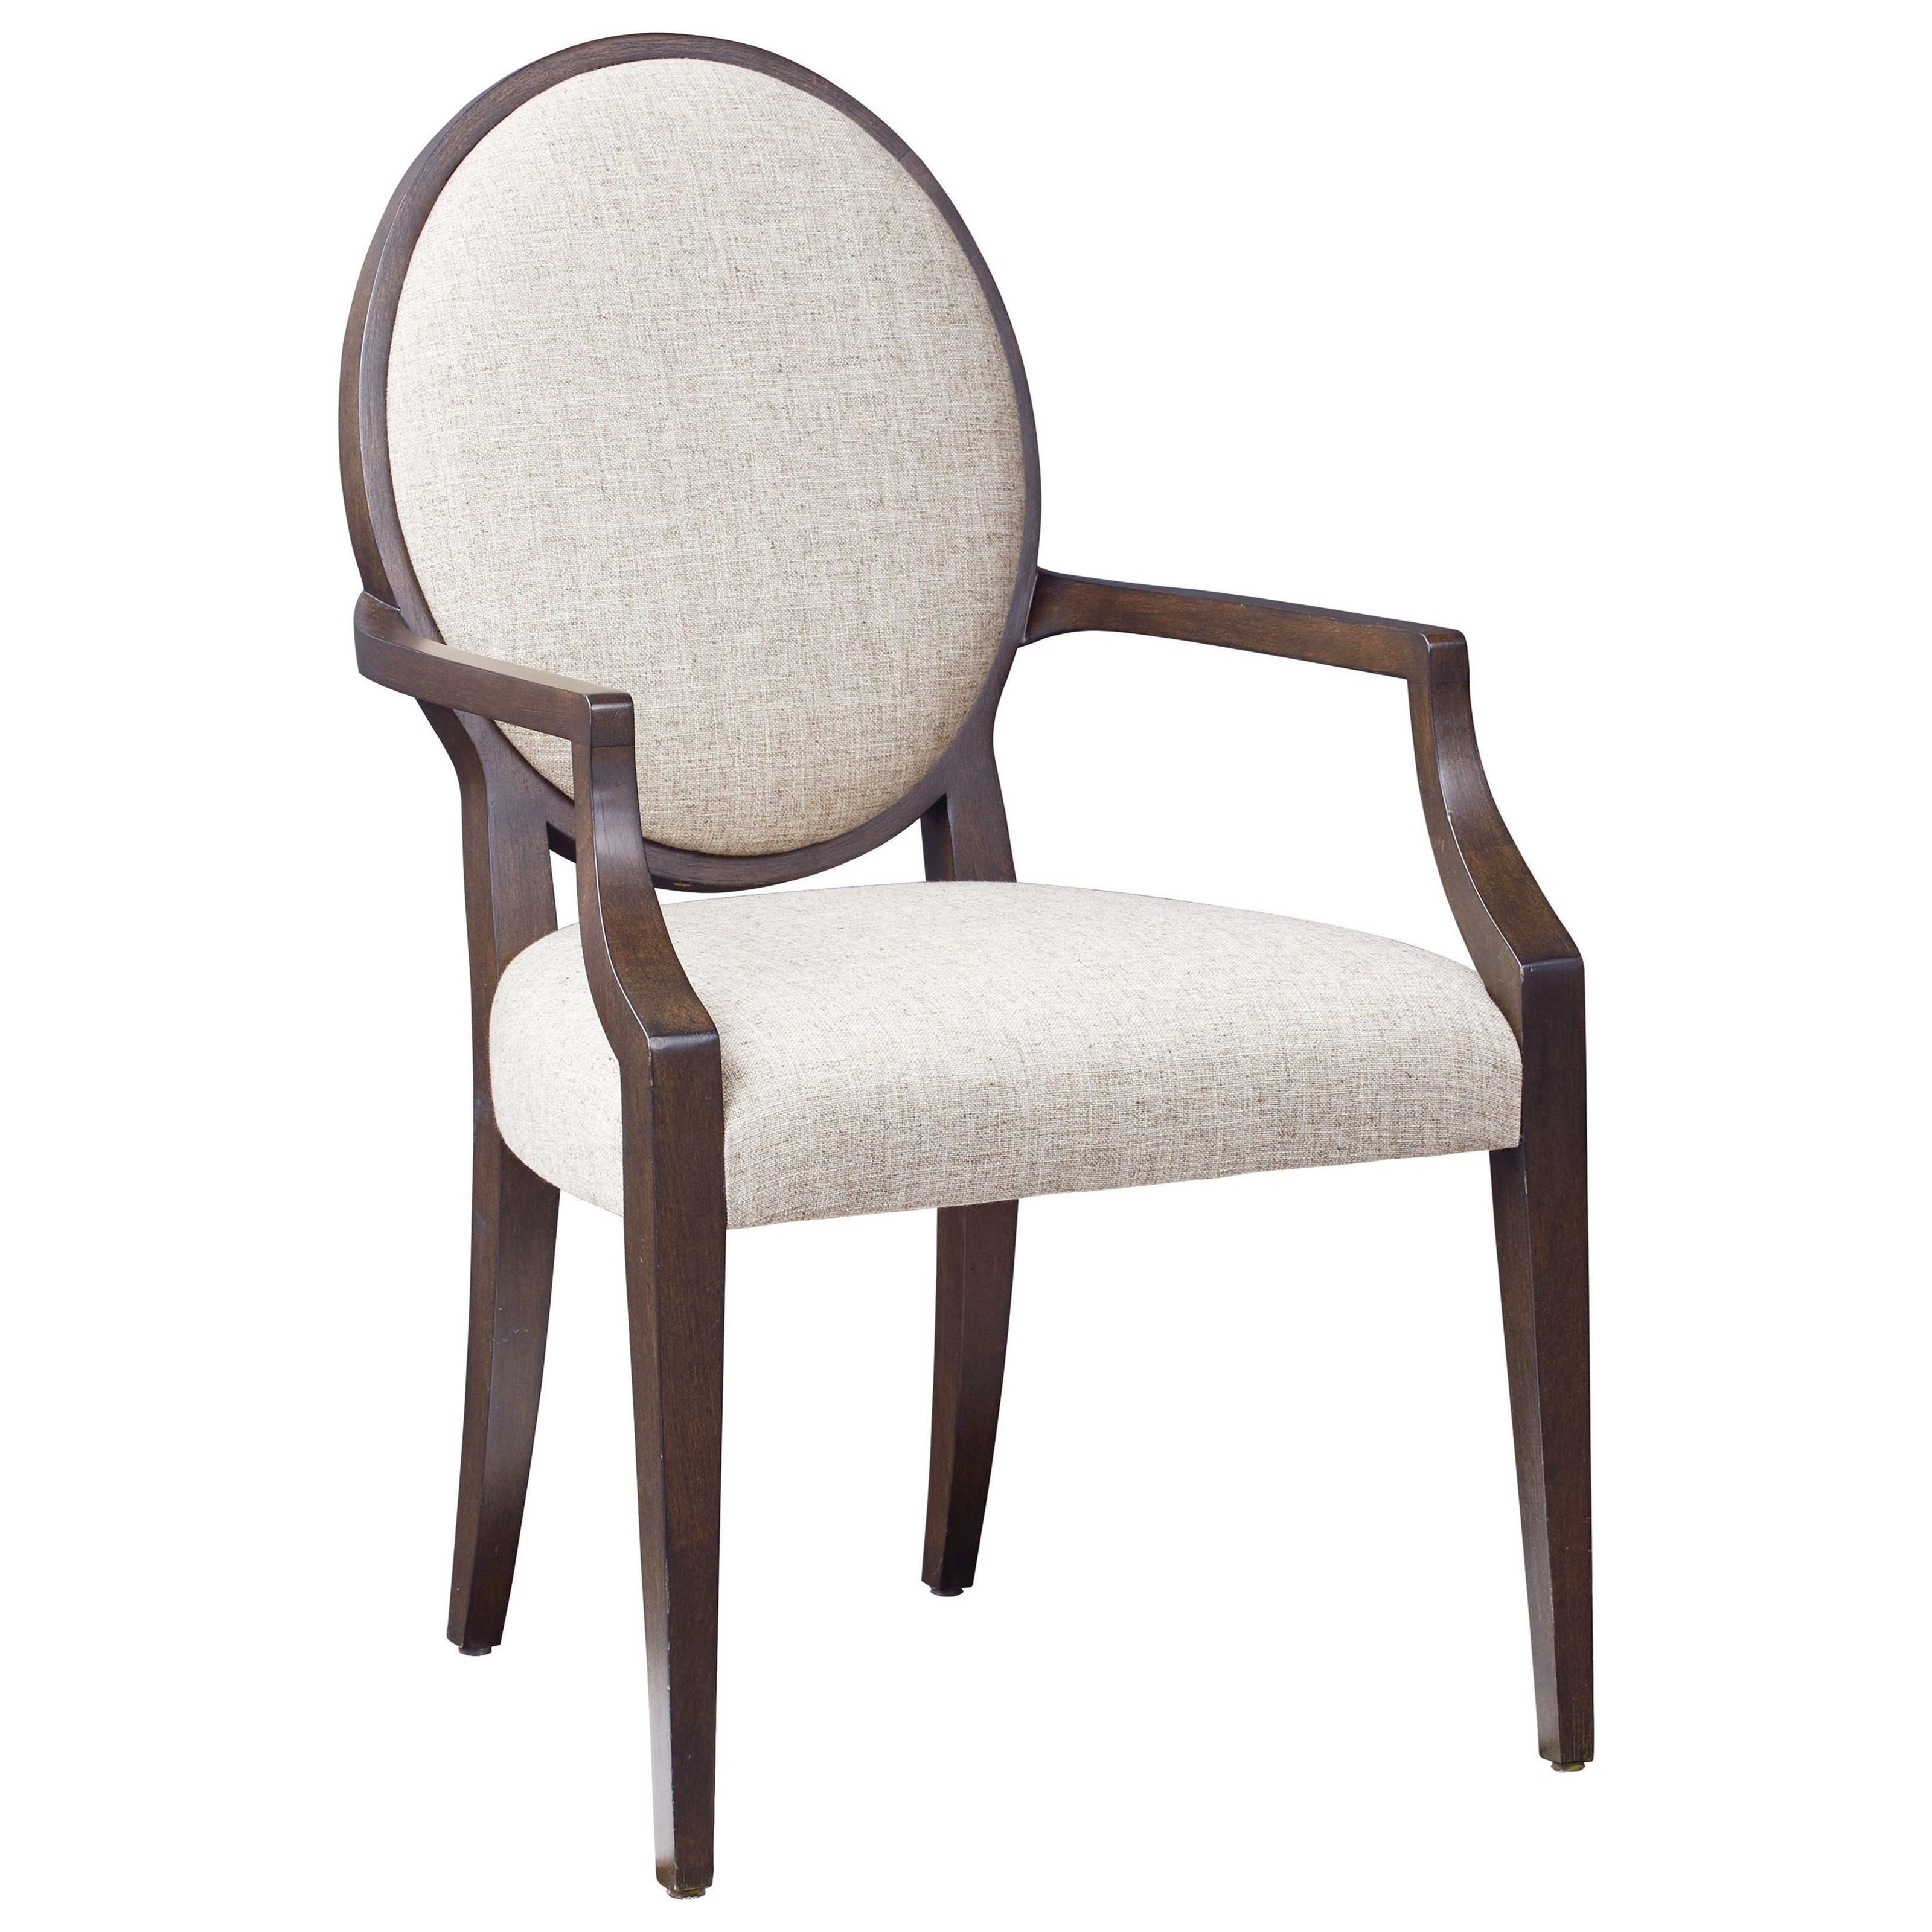 Modern - Astor and Rivoli Arm Chair by Bassett at Fisher Home Furnishings